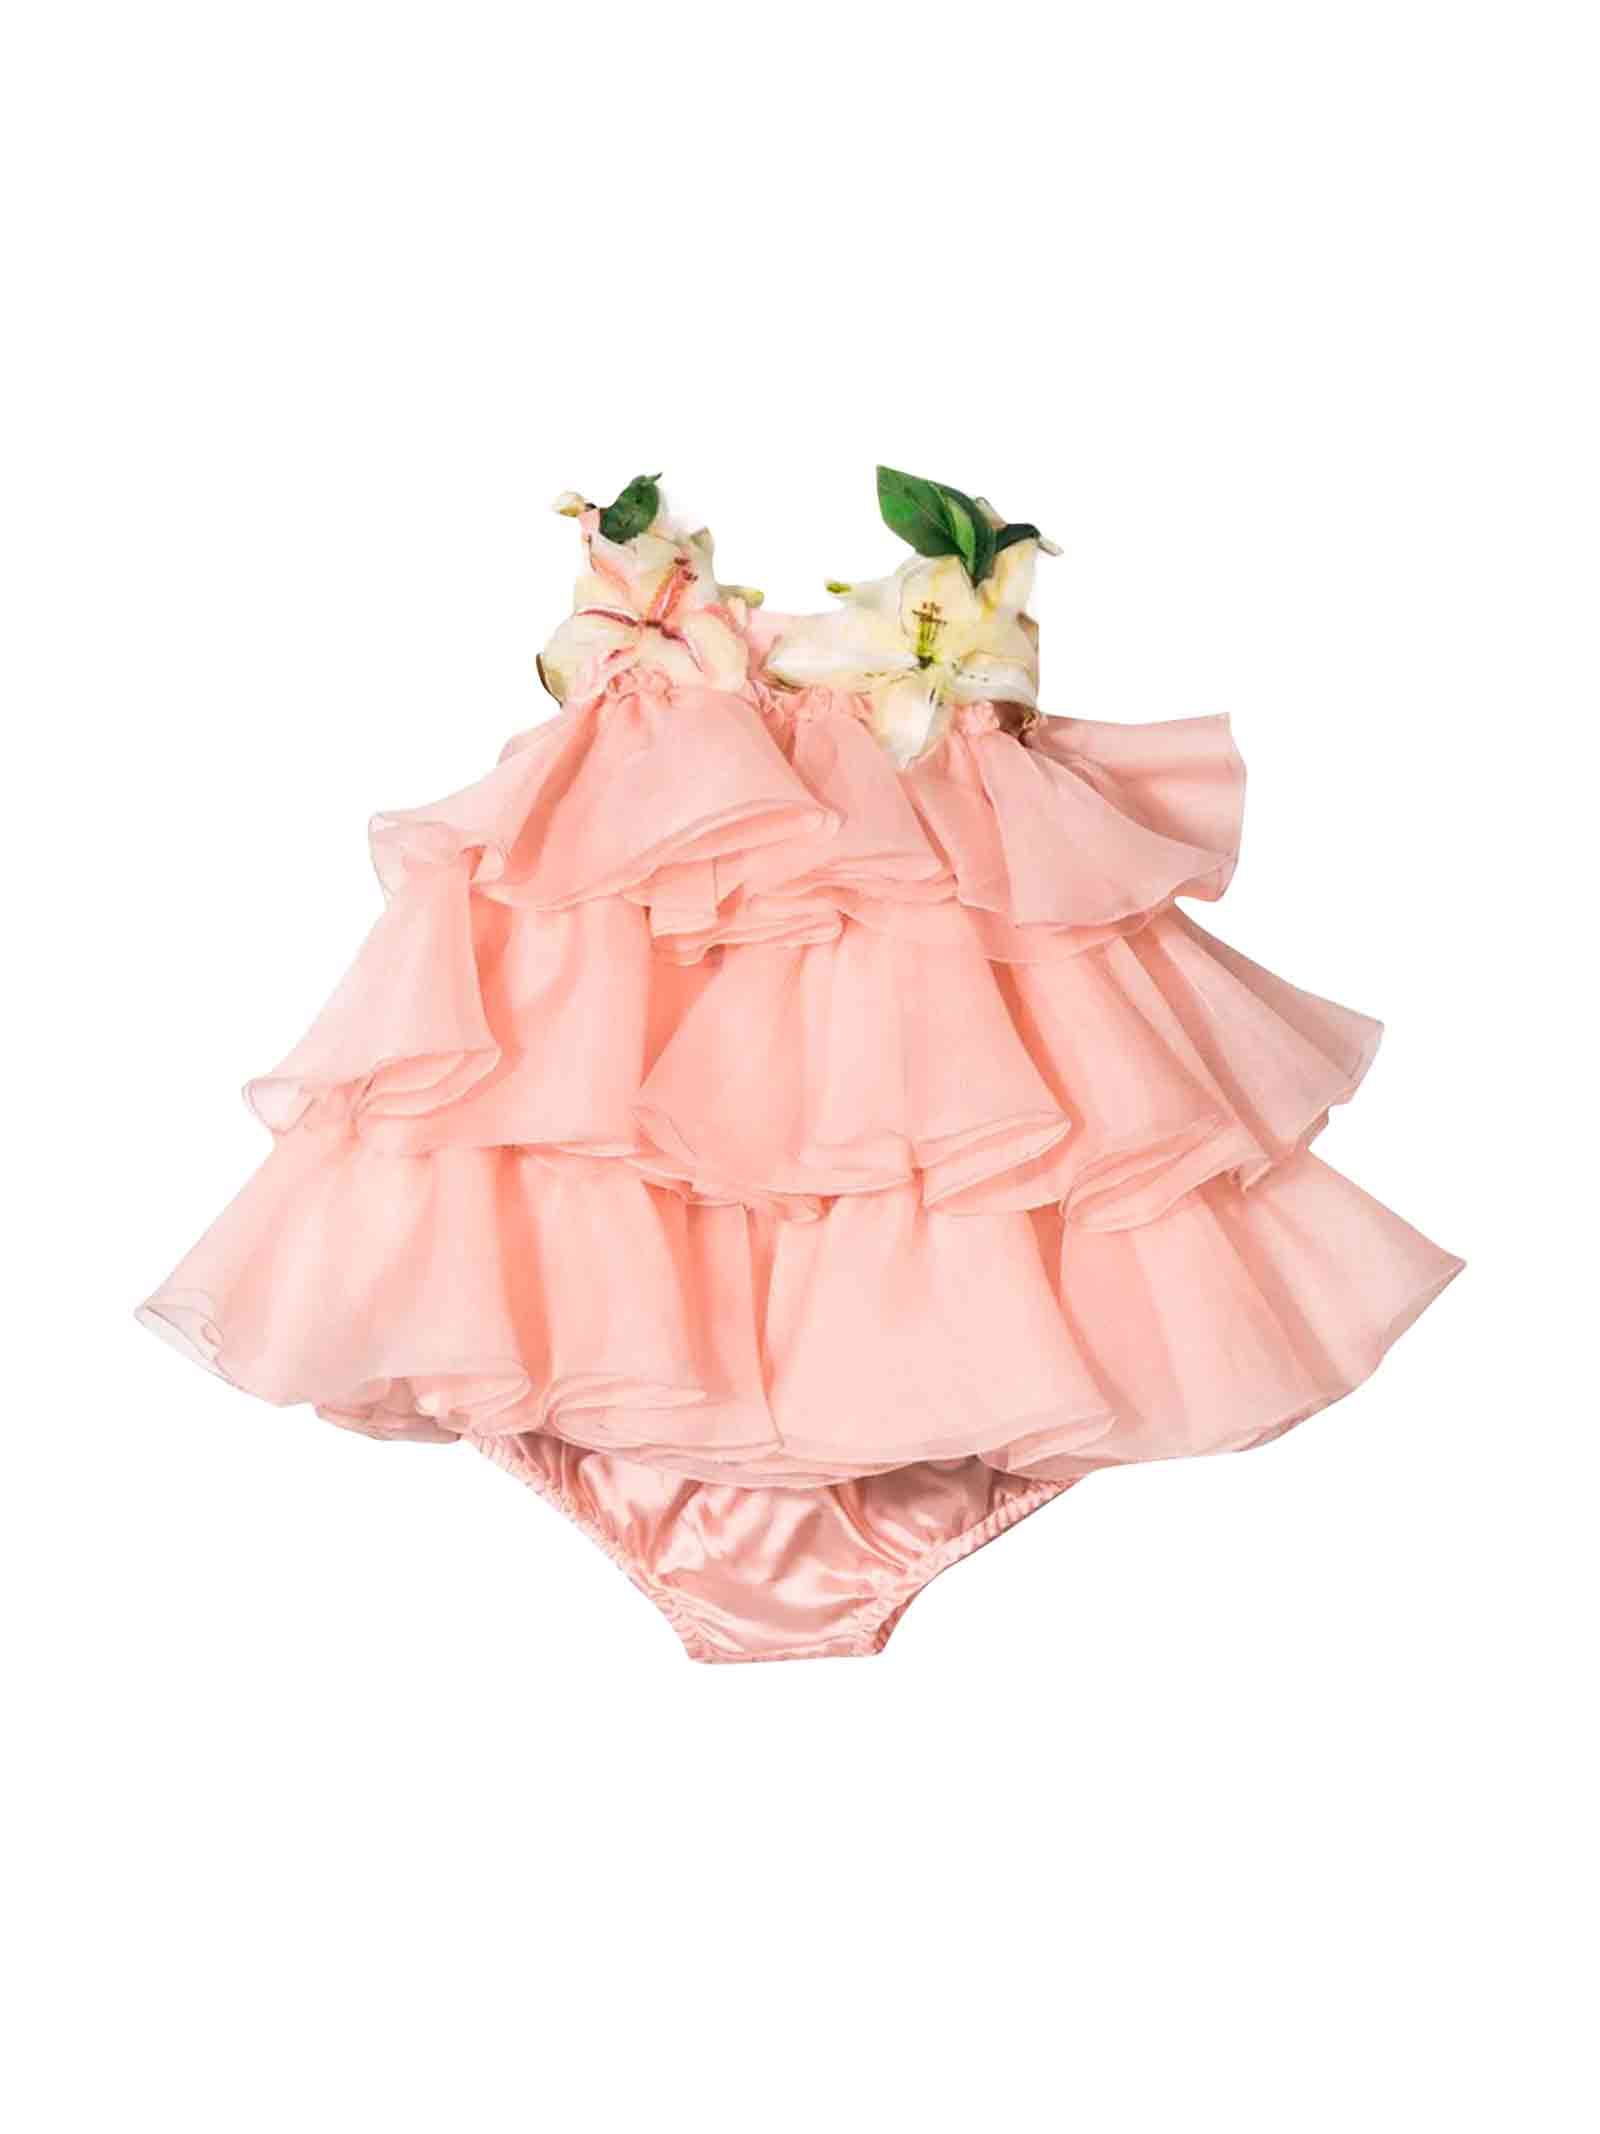 Dolce & Gabbana Pink Newborn Dress Dolce And Gabbana Kids